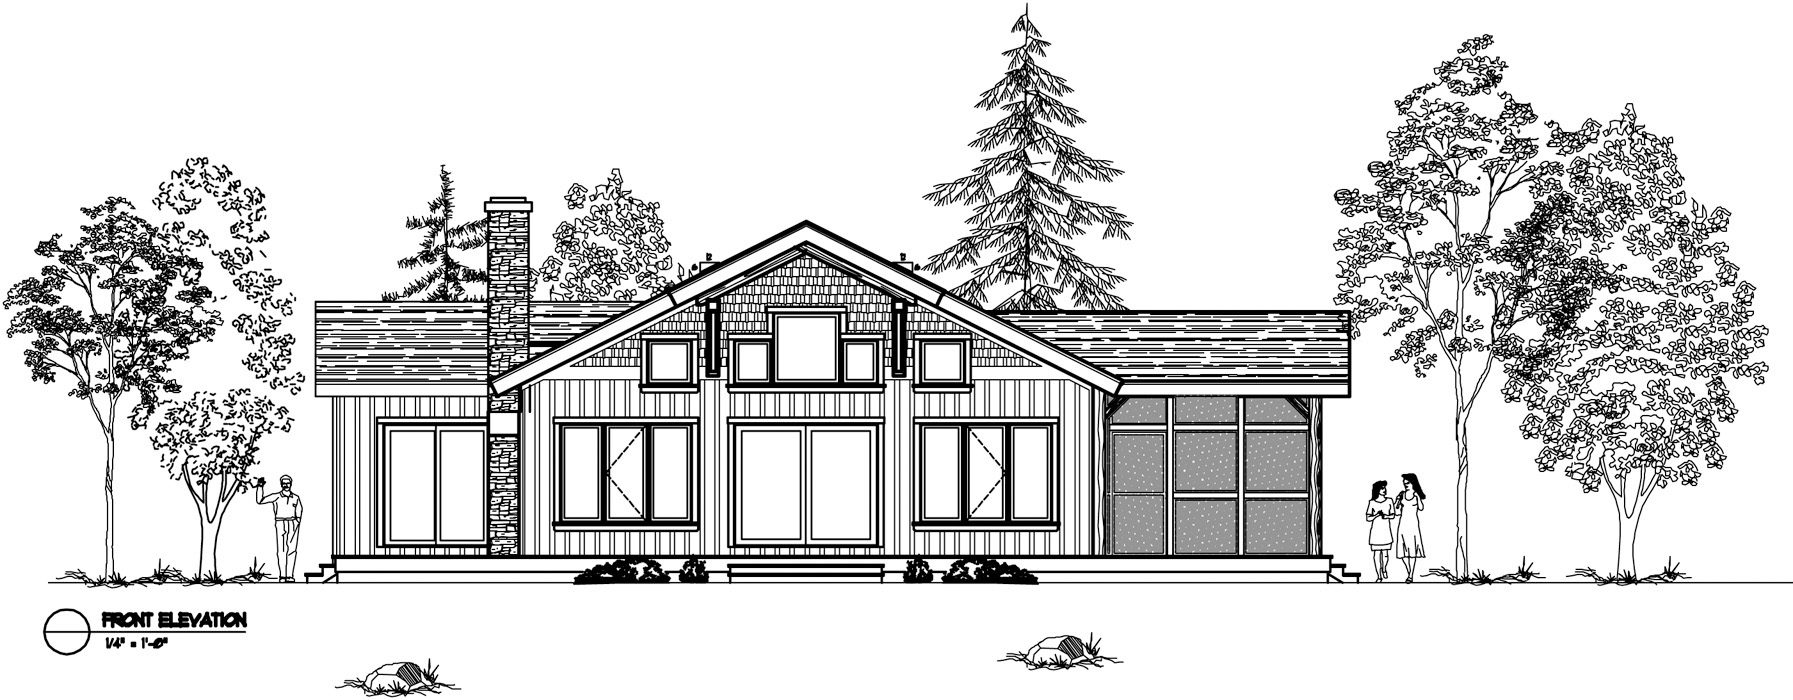 Normerica Timber Frames, House Plan, The Nipissing 3542, Front Elevation